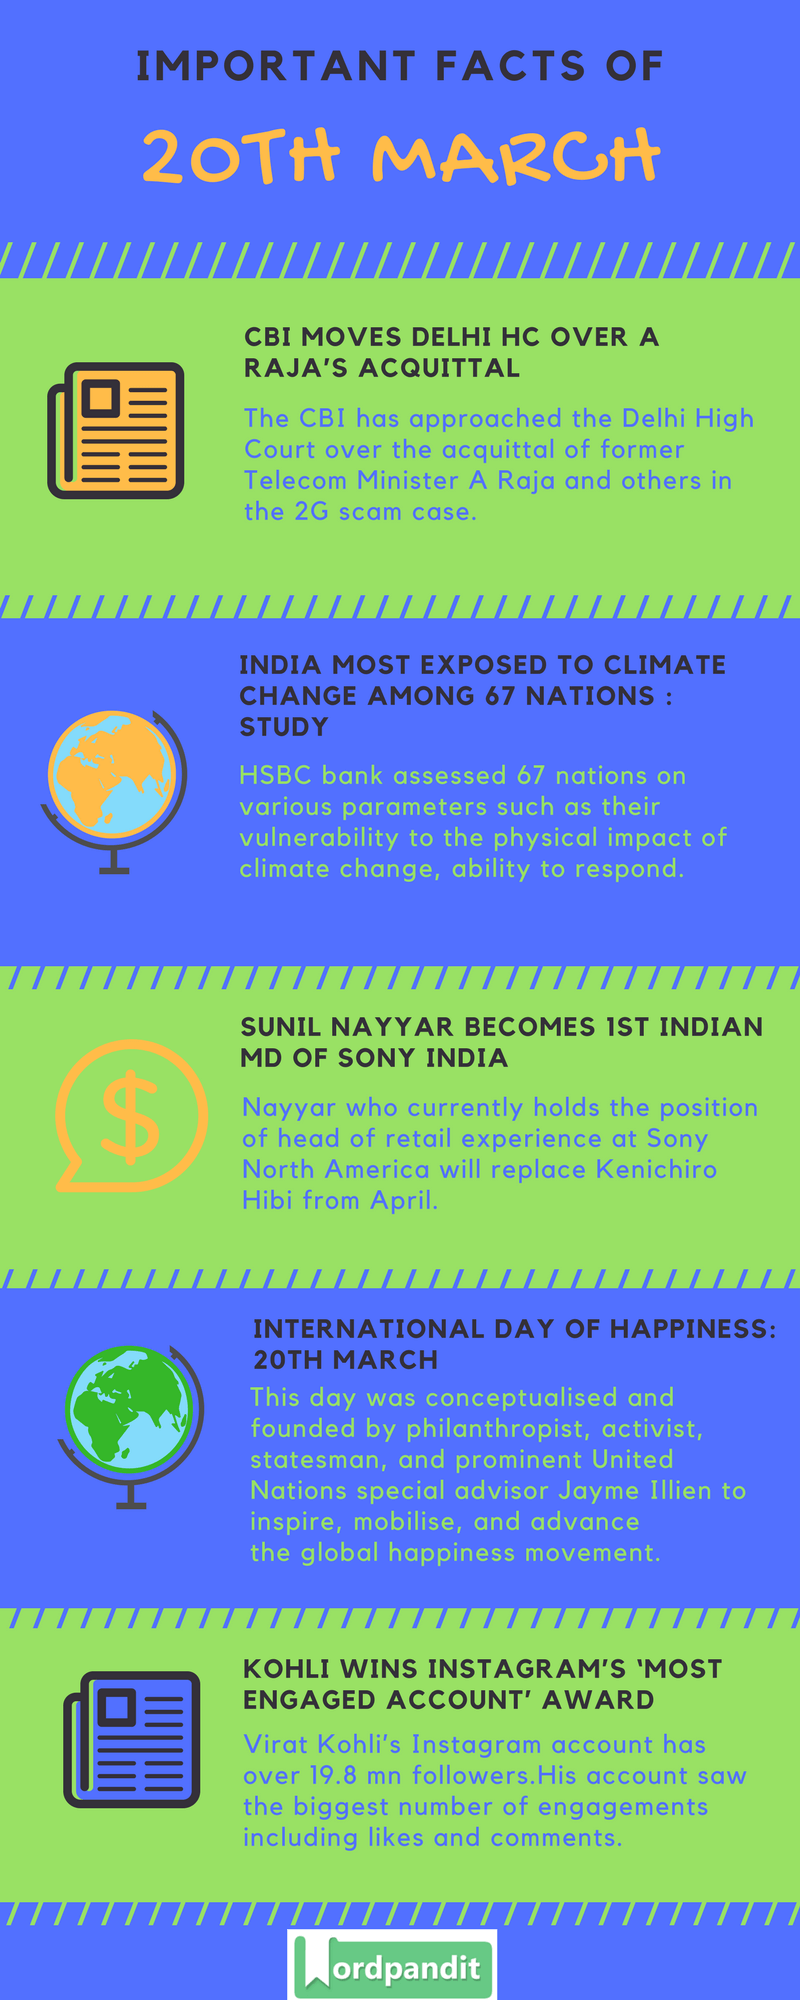 Daily Current Affairs 20 March 2018 Current Affairs Quiz March 20 2018 Current Affairs Infographic